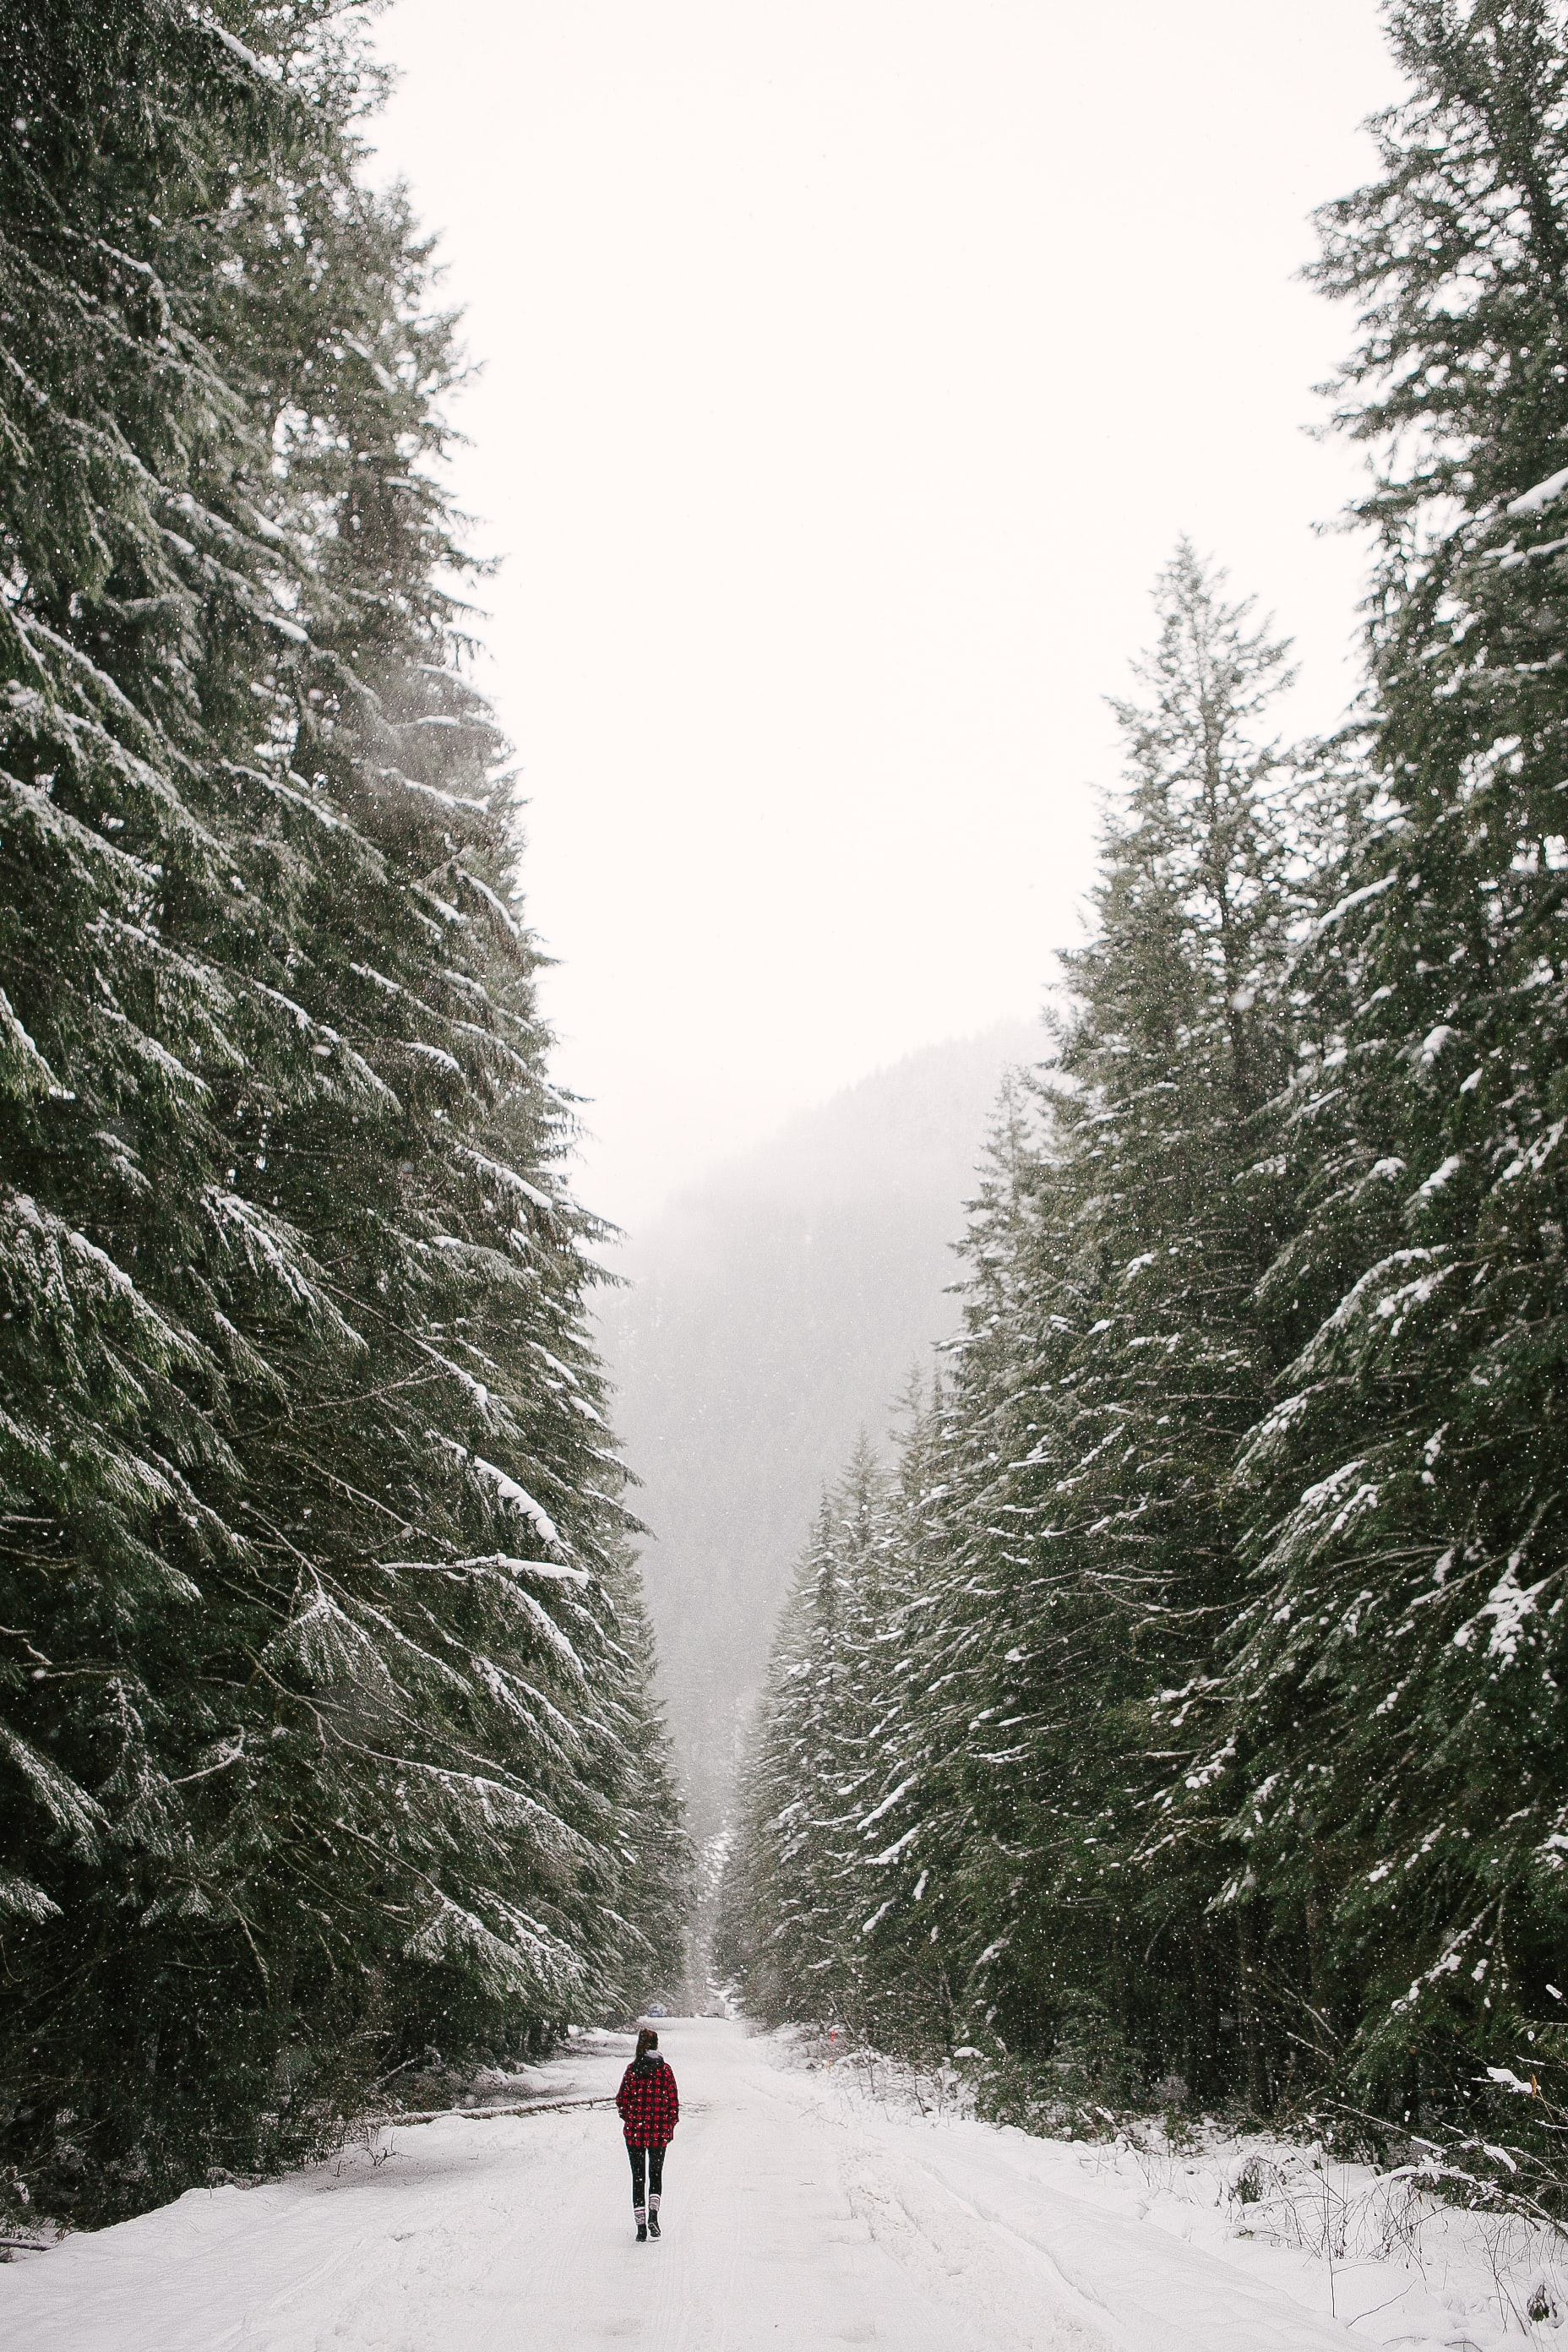 person walking on snowy road between green pine trees